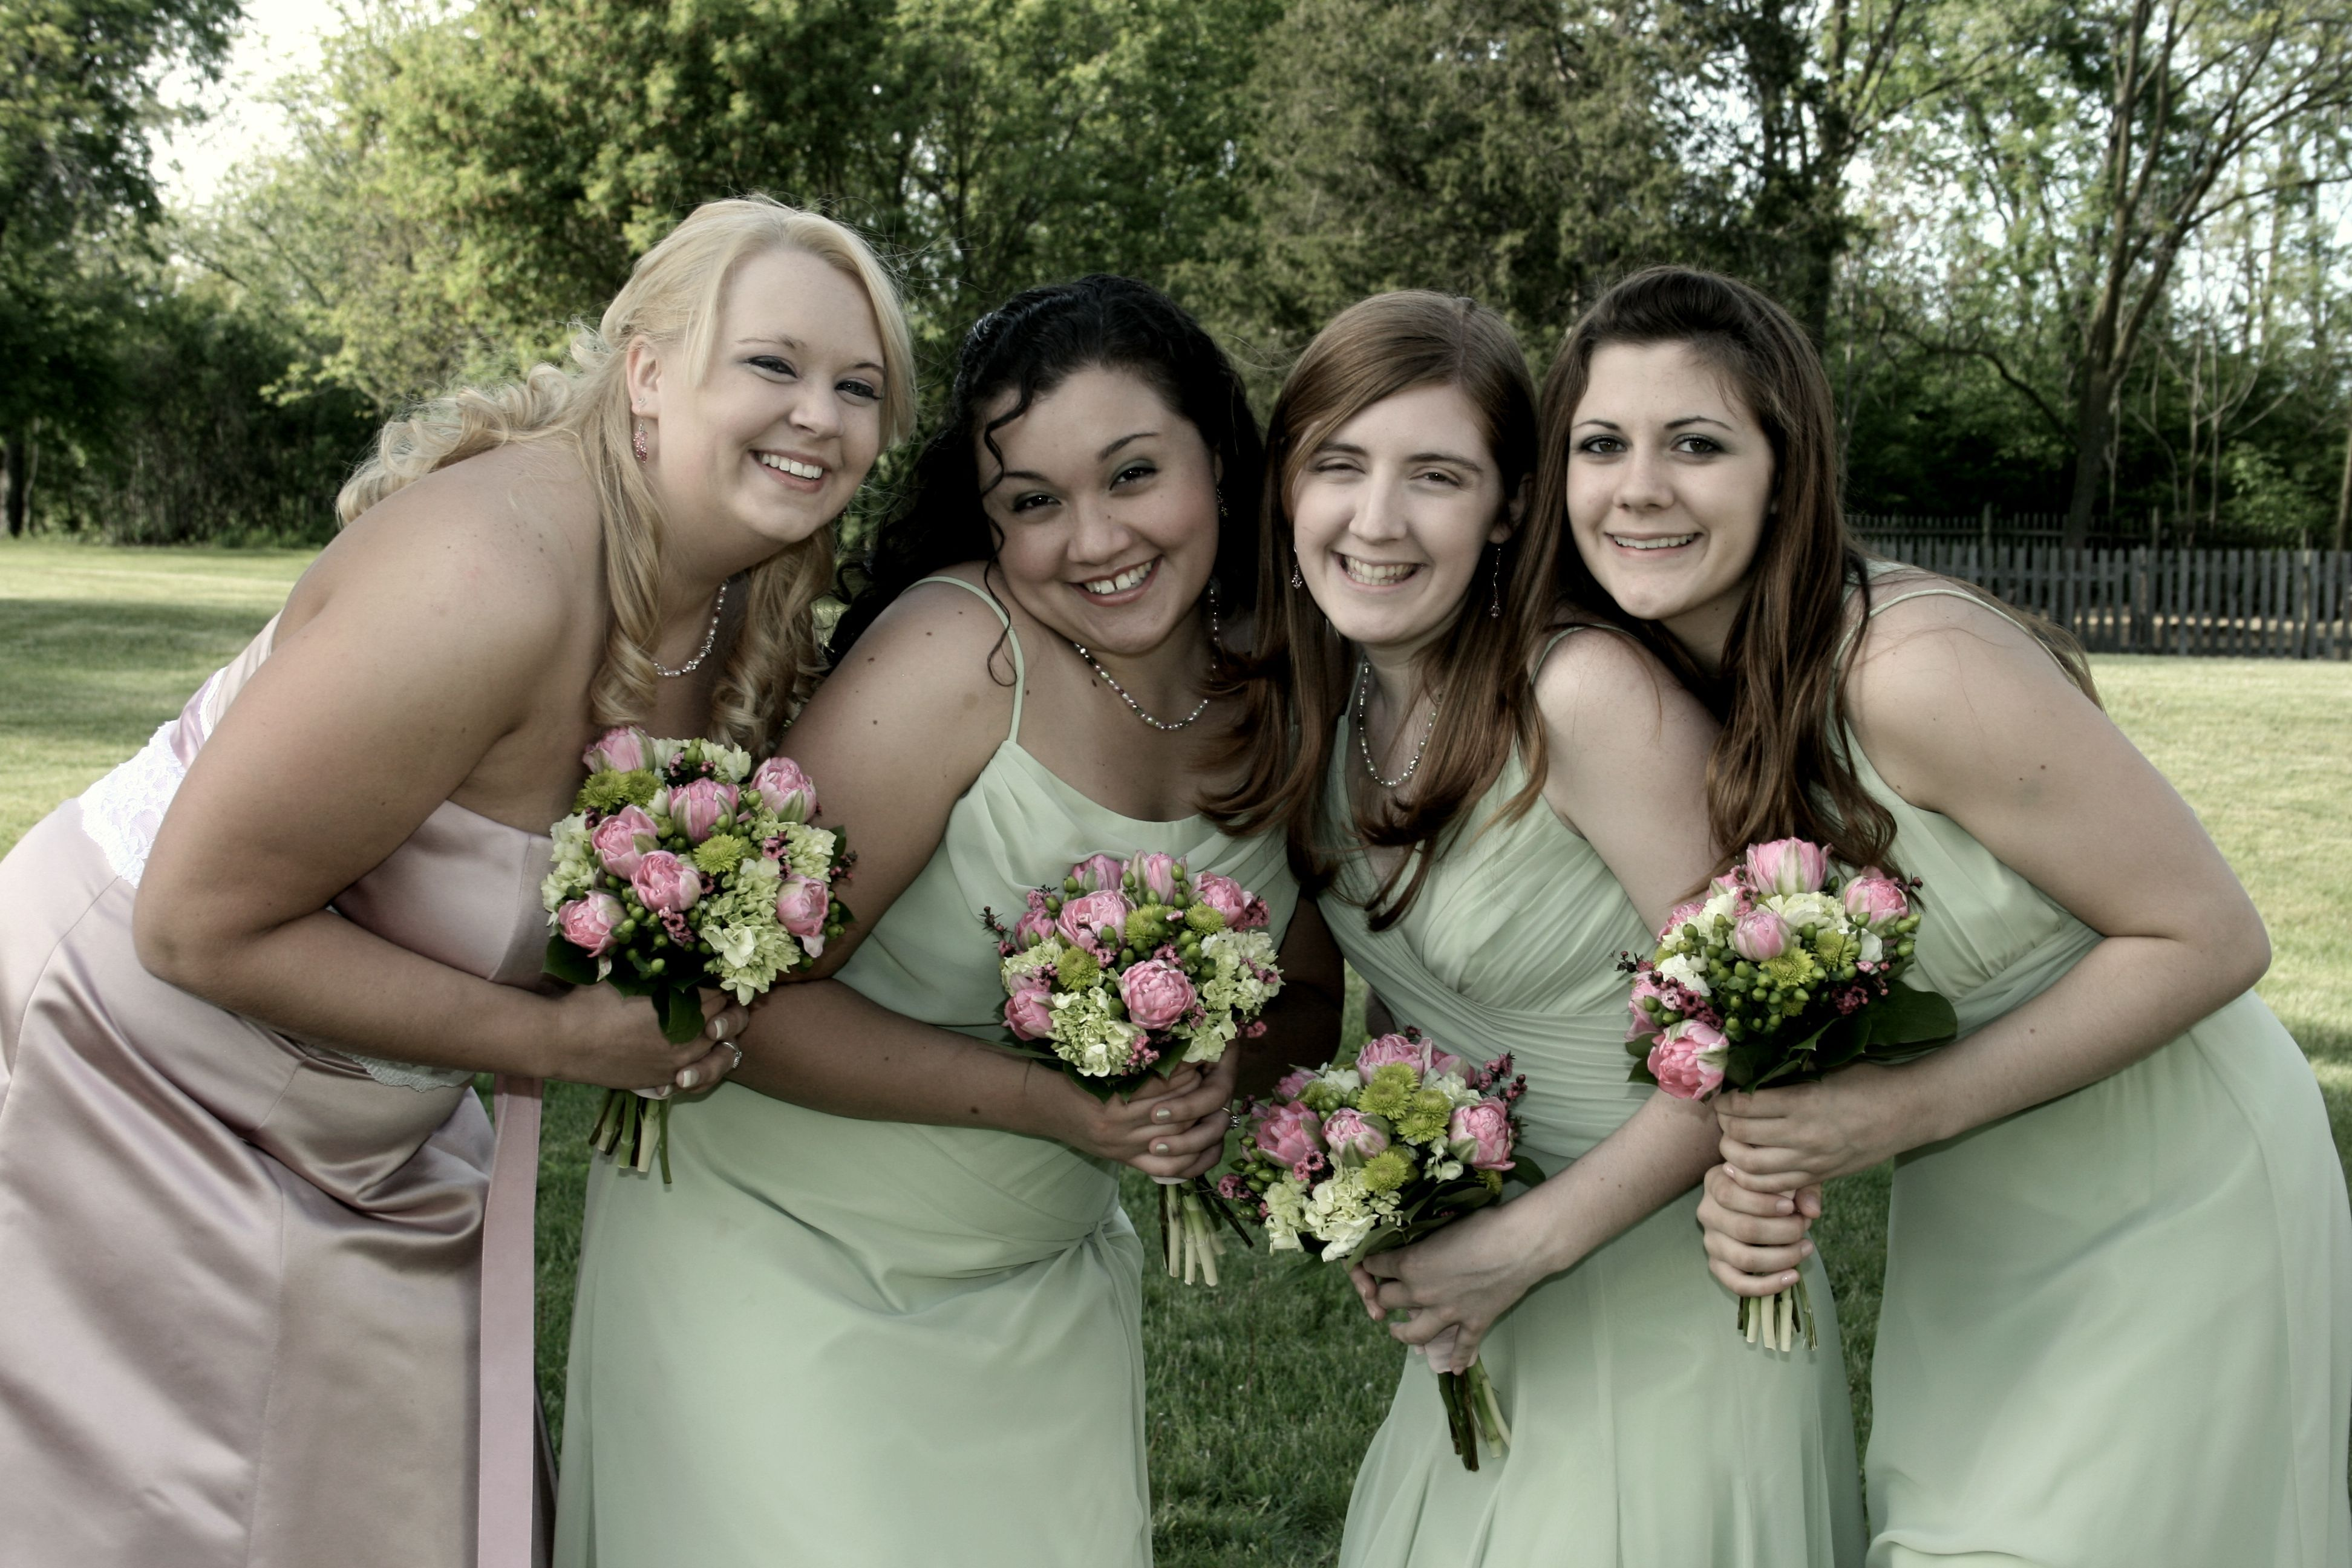 Flowers & Decor, Bridesmaids, Bridesmaids Dresses, Fashion, pink, green, Bridesmaid Bouquets, Flowers, Flower Wedding Dresses